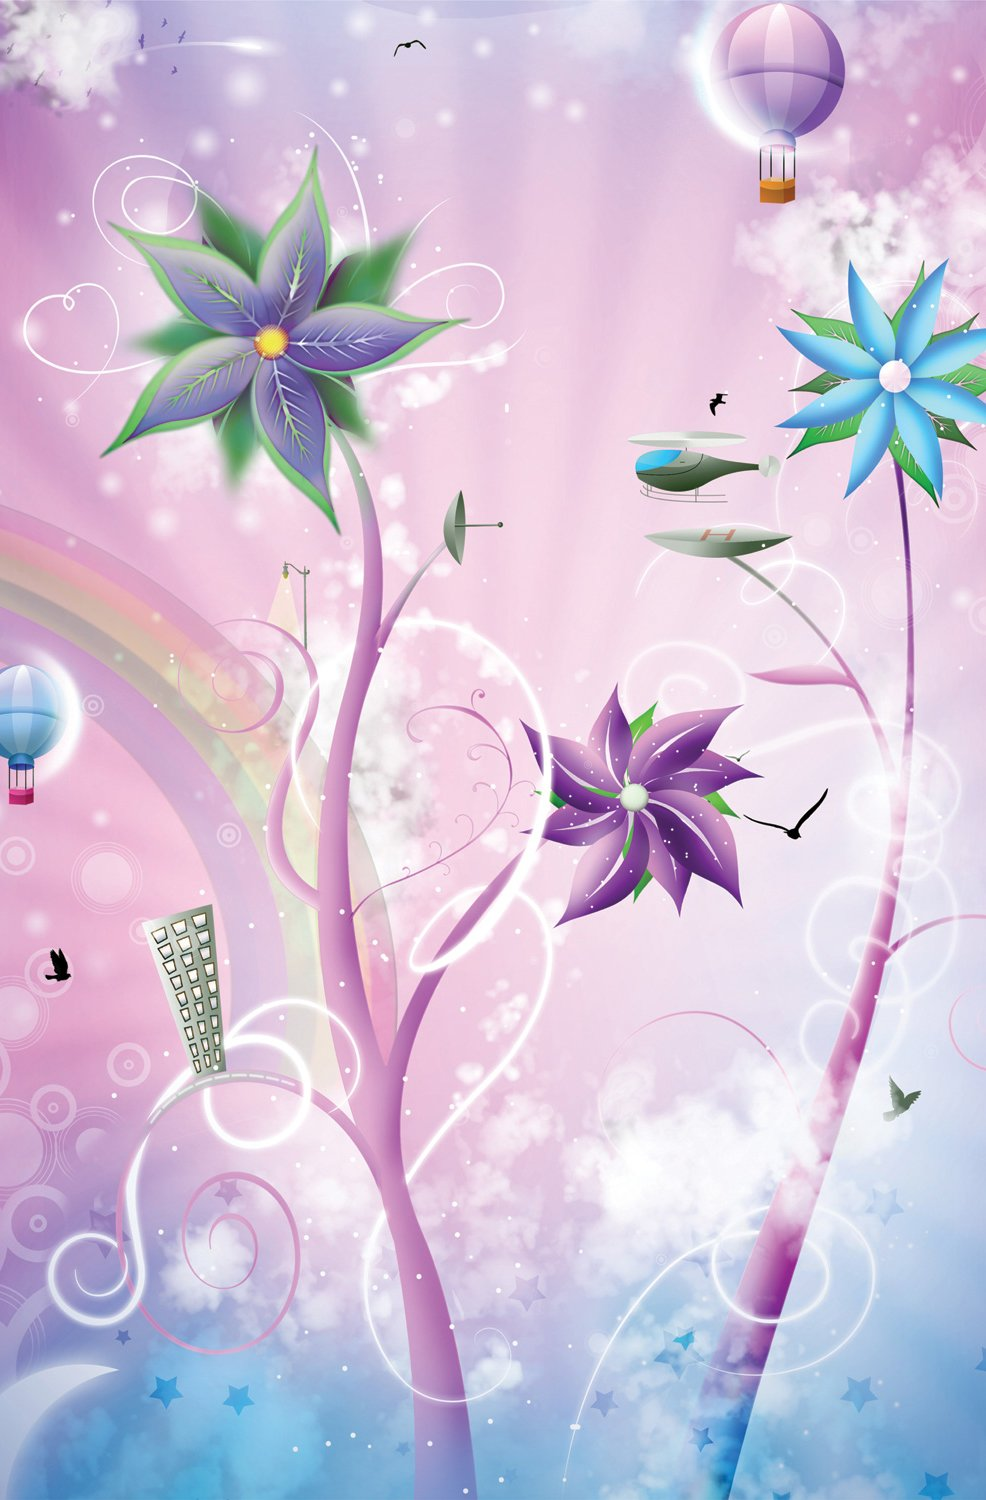 JP London SPMURLT0056 Prepasted Removable Wall Mural Banff Thneedville The Lorax Seuss Flowers at 2 Wide by 3 High